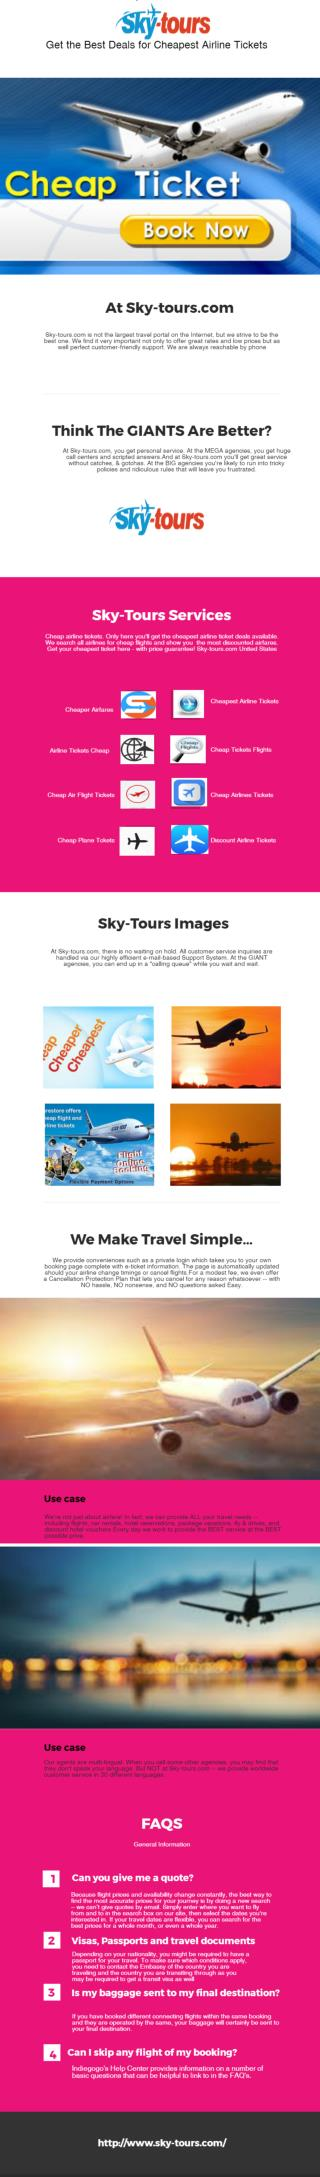 Get the Best Deals for Cheapest Airline Tickets